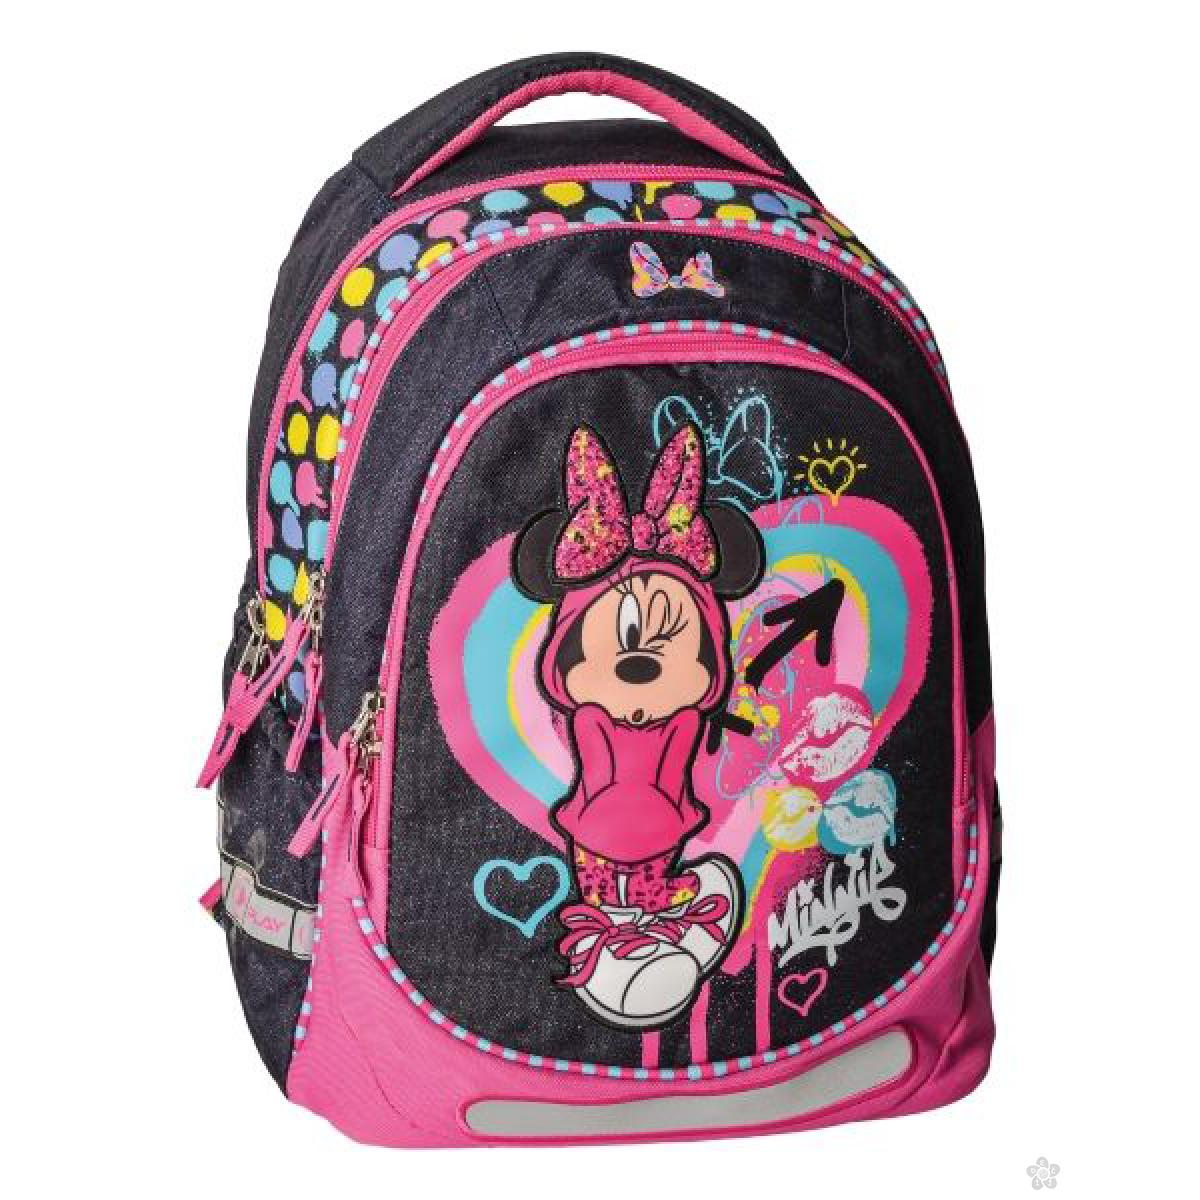 Anatomski ranac  Maxx Minnie Mouse Heart 318022